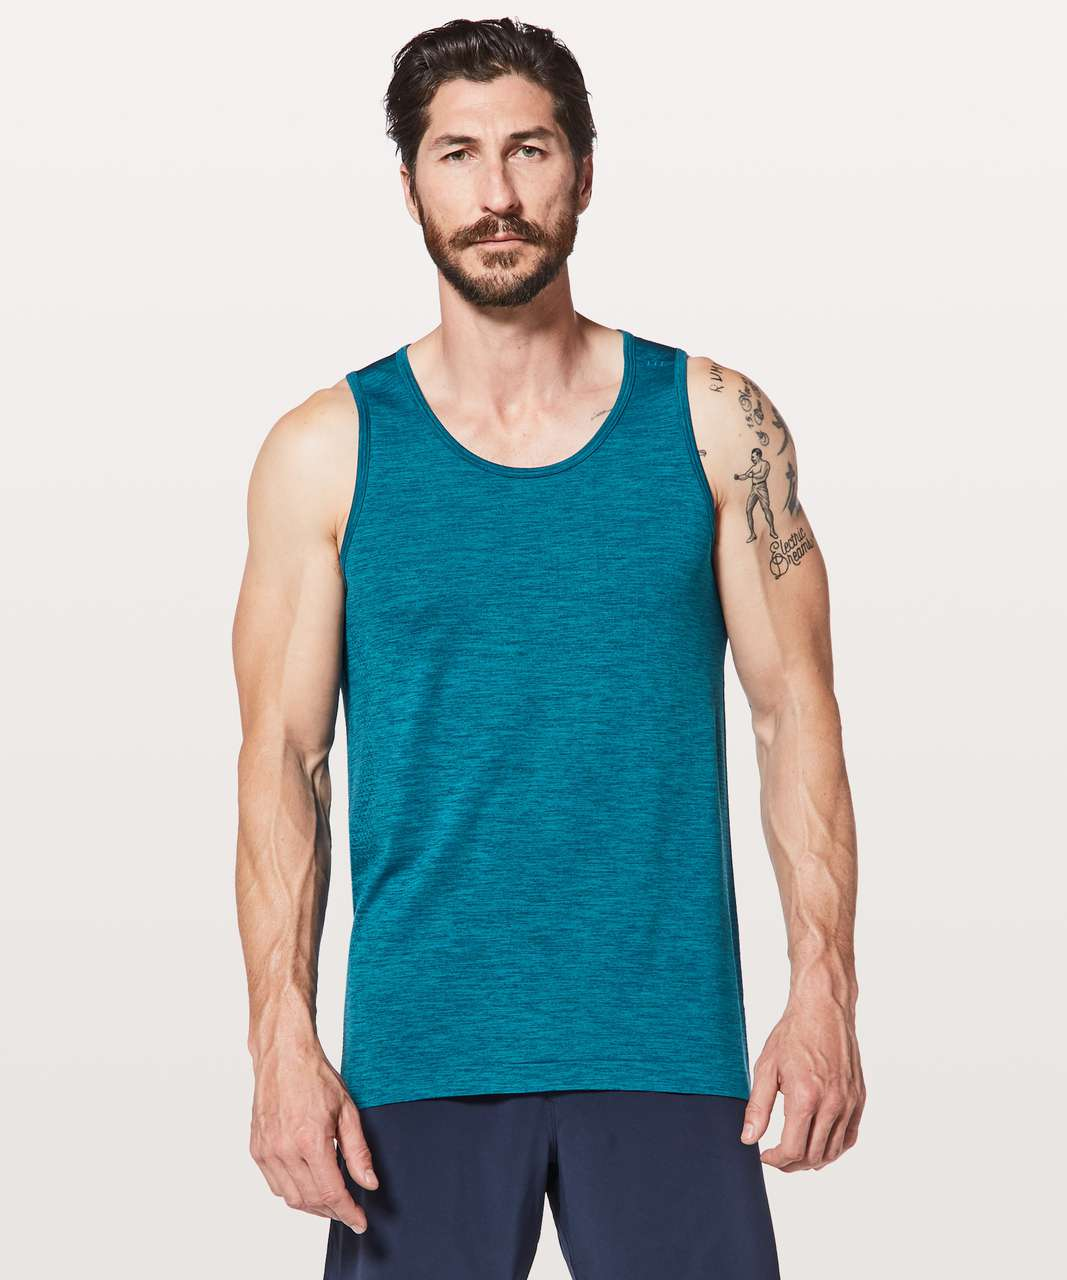 Lululemon Metal Vent Tech Surge Tank - Night Diver / Capri